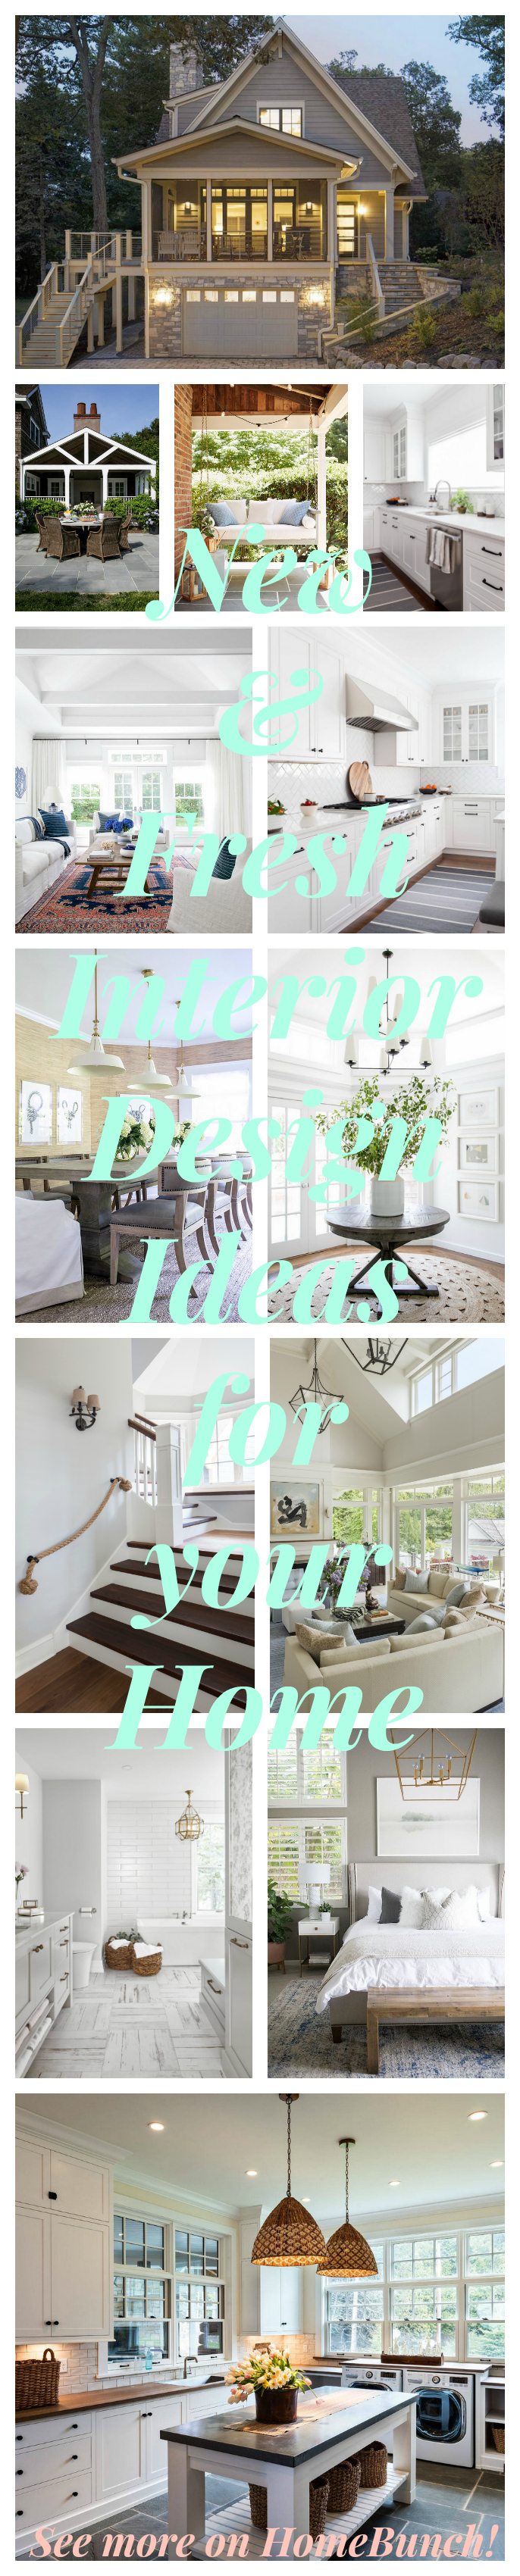 New & Fresh Interior Design Ideas for your Home. See interior ideas for your home on the blog today #interiors #interiordesignideas #interiordesign #interiorsources Home Bunch